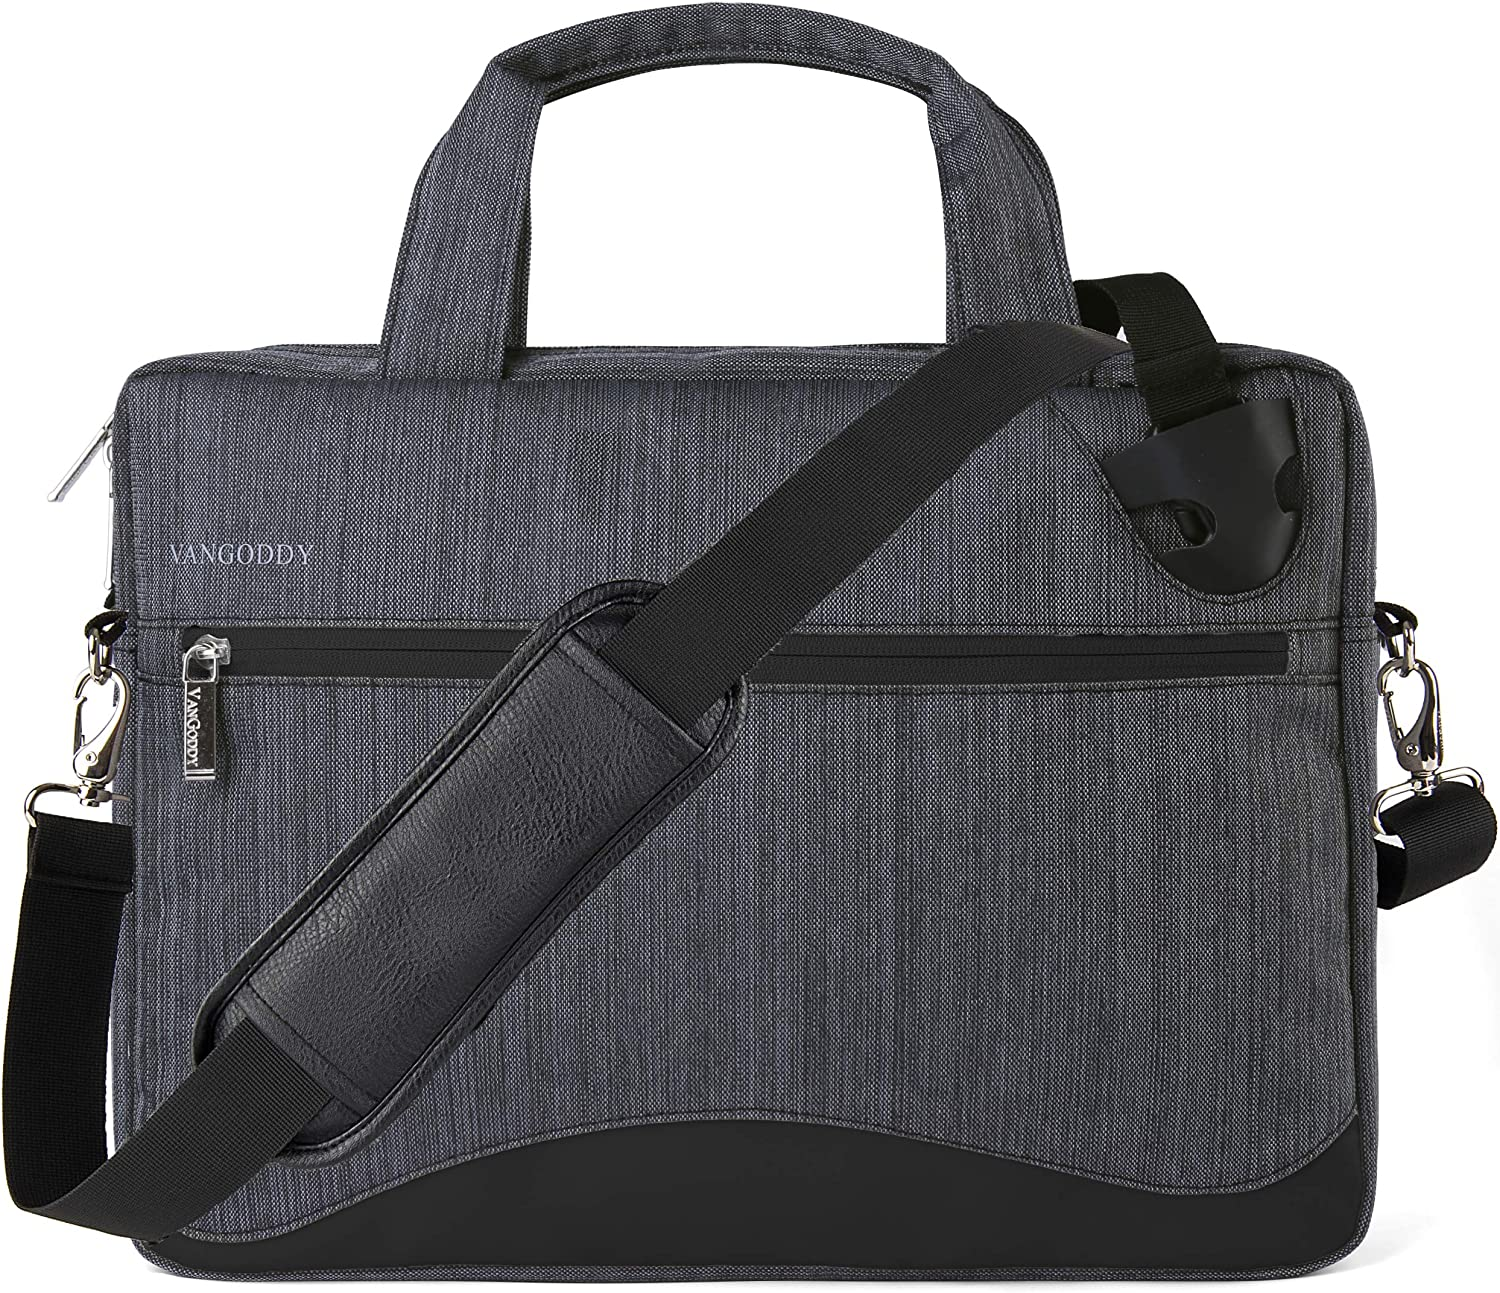 Black Anti-Theft Laptop Messenger Bag for Microsoft Surface Pro 7 6 12.3, Pro X 13, Laptop 3 2 13.5